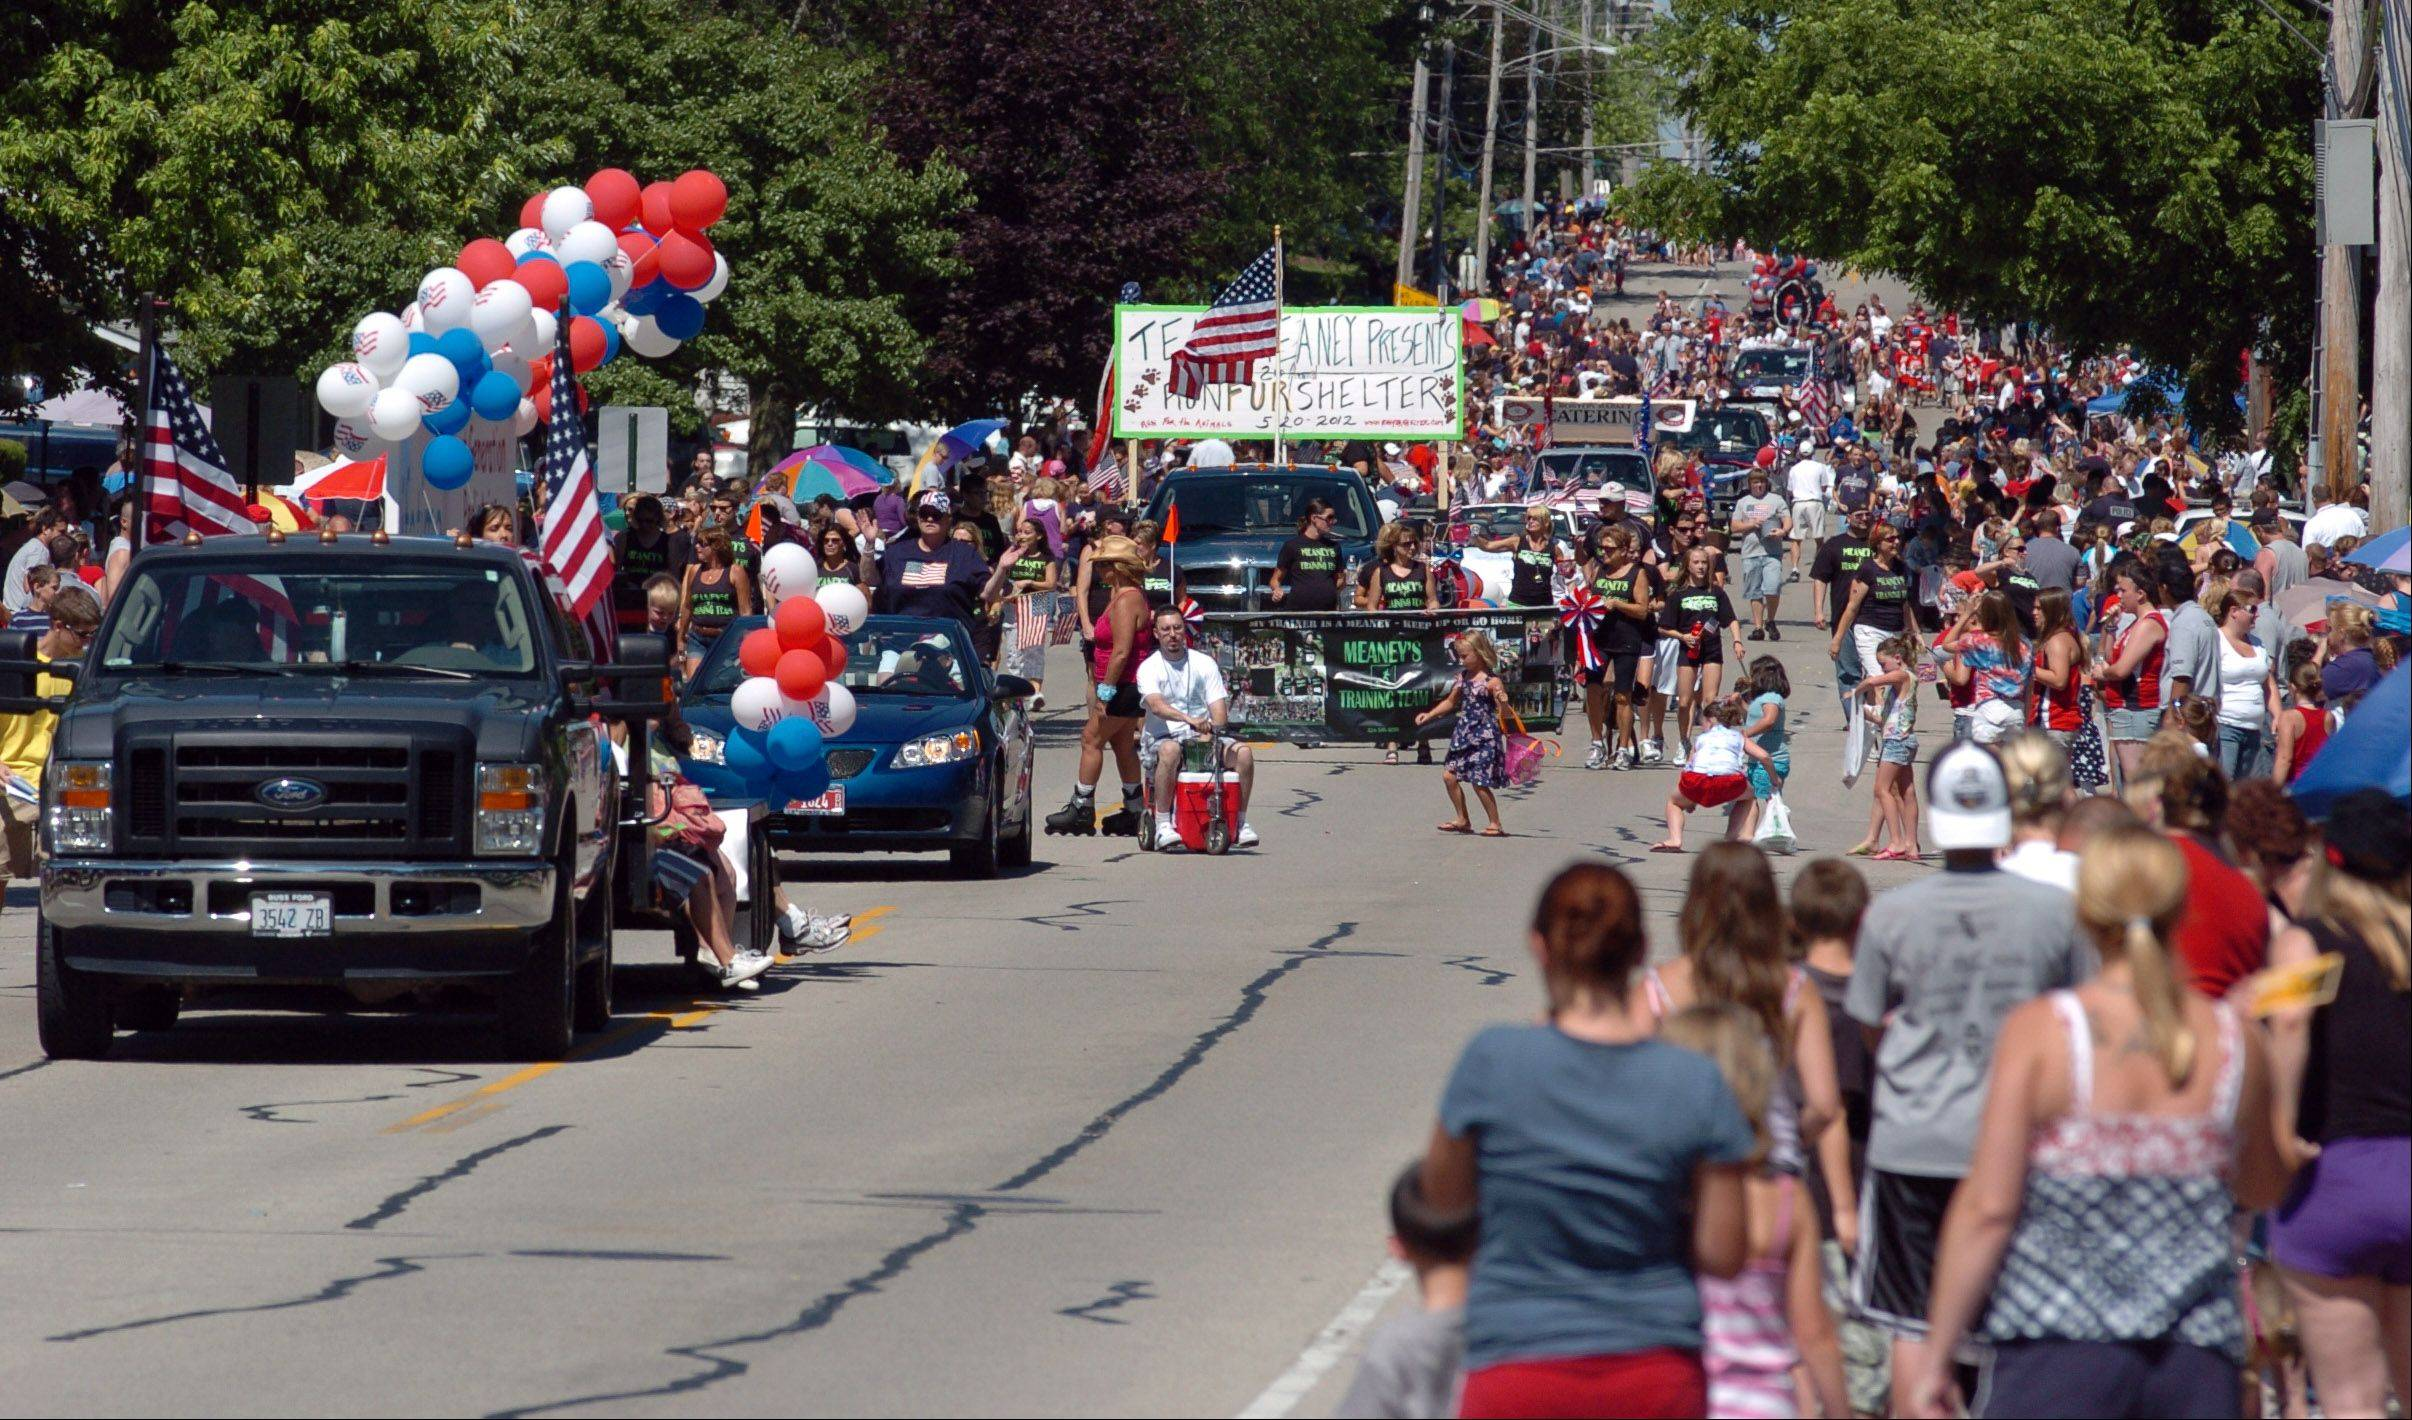 The South Elgin Fourth of July Parade kicked off at 10 a.m. down Spring Street in South Elgin.